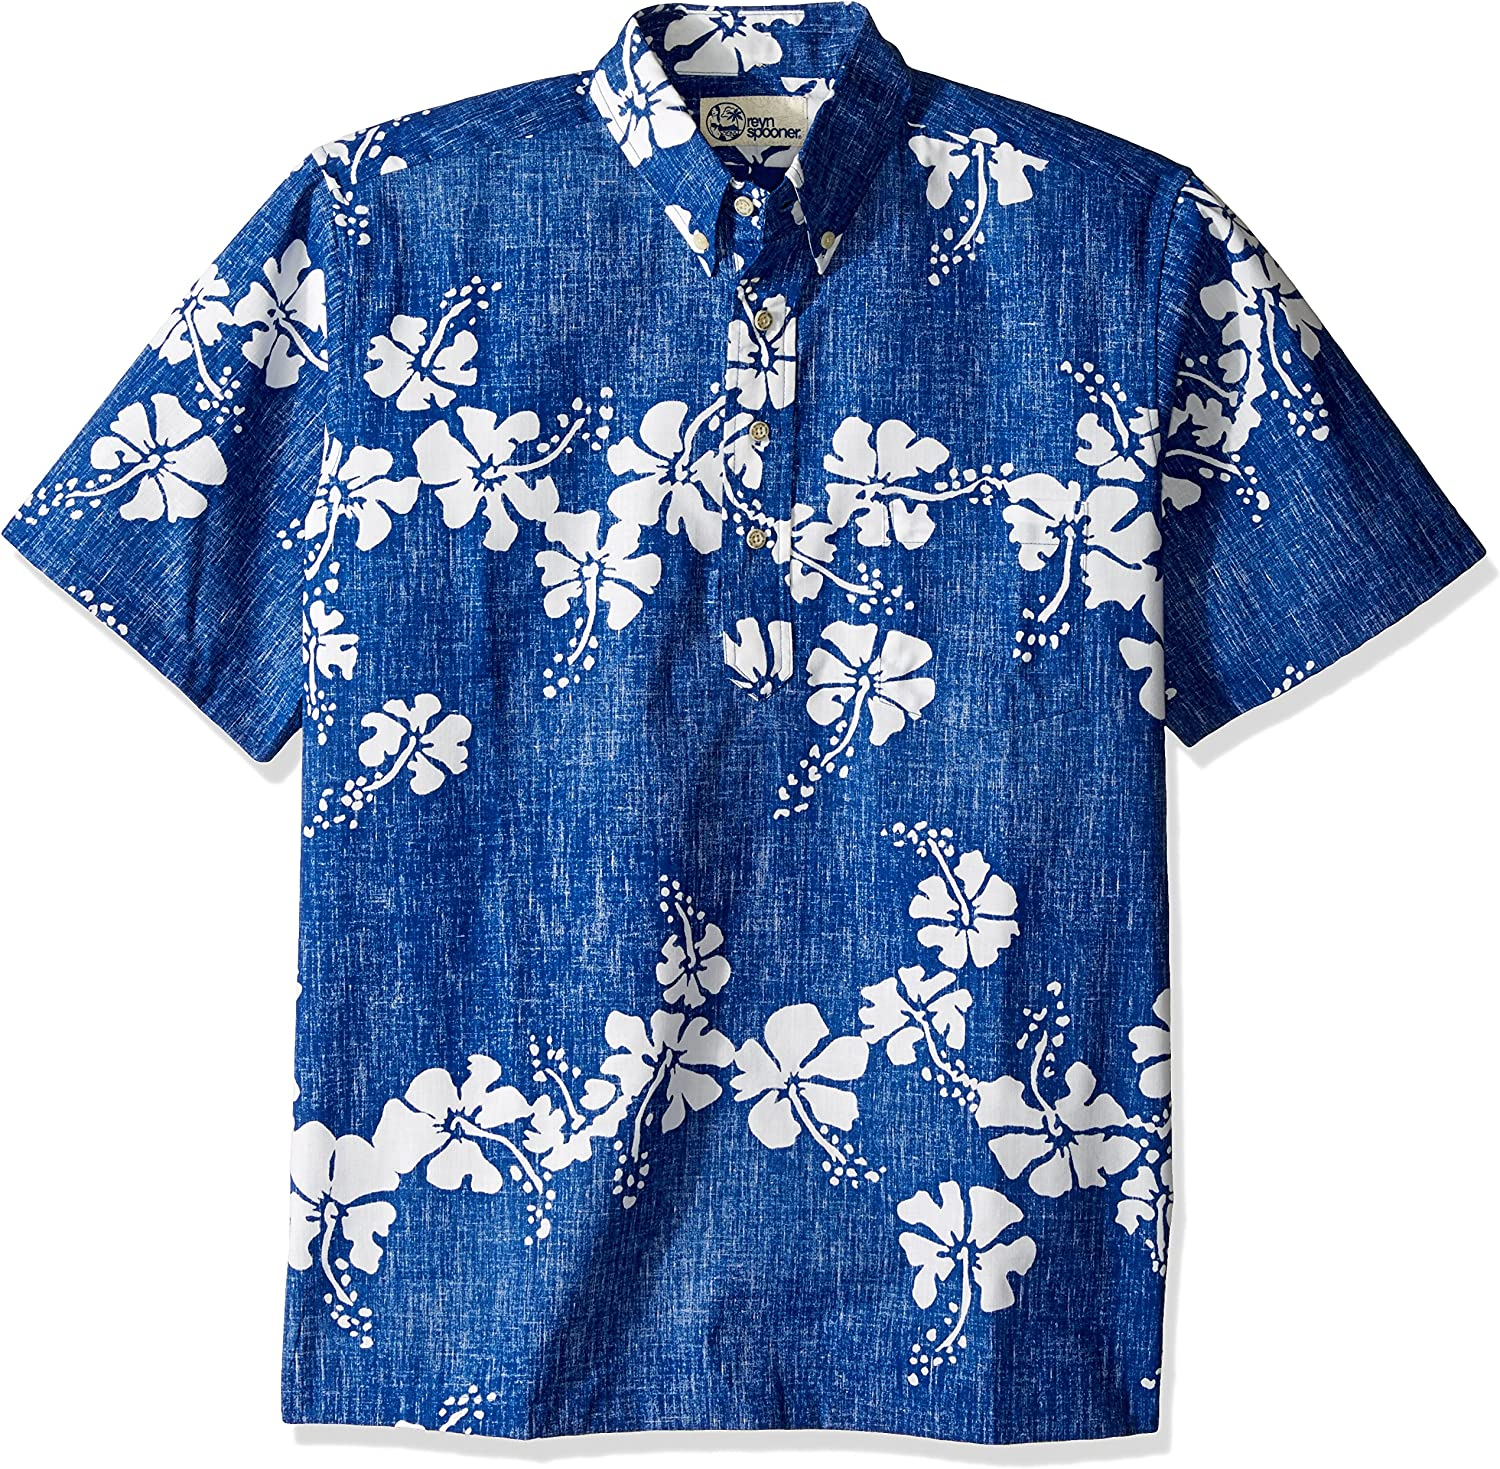 Reyn Spooner Large-scale sale Men's Latest item 50th State Flower P Kloth Classic Fit